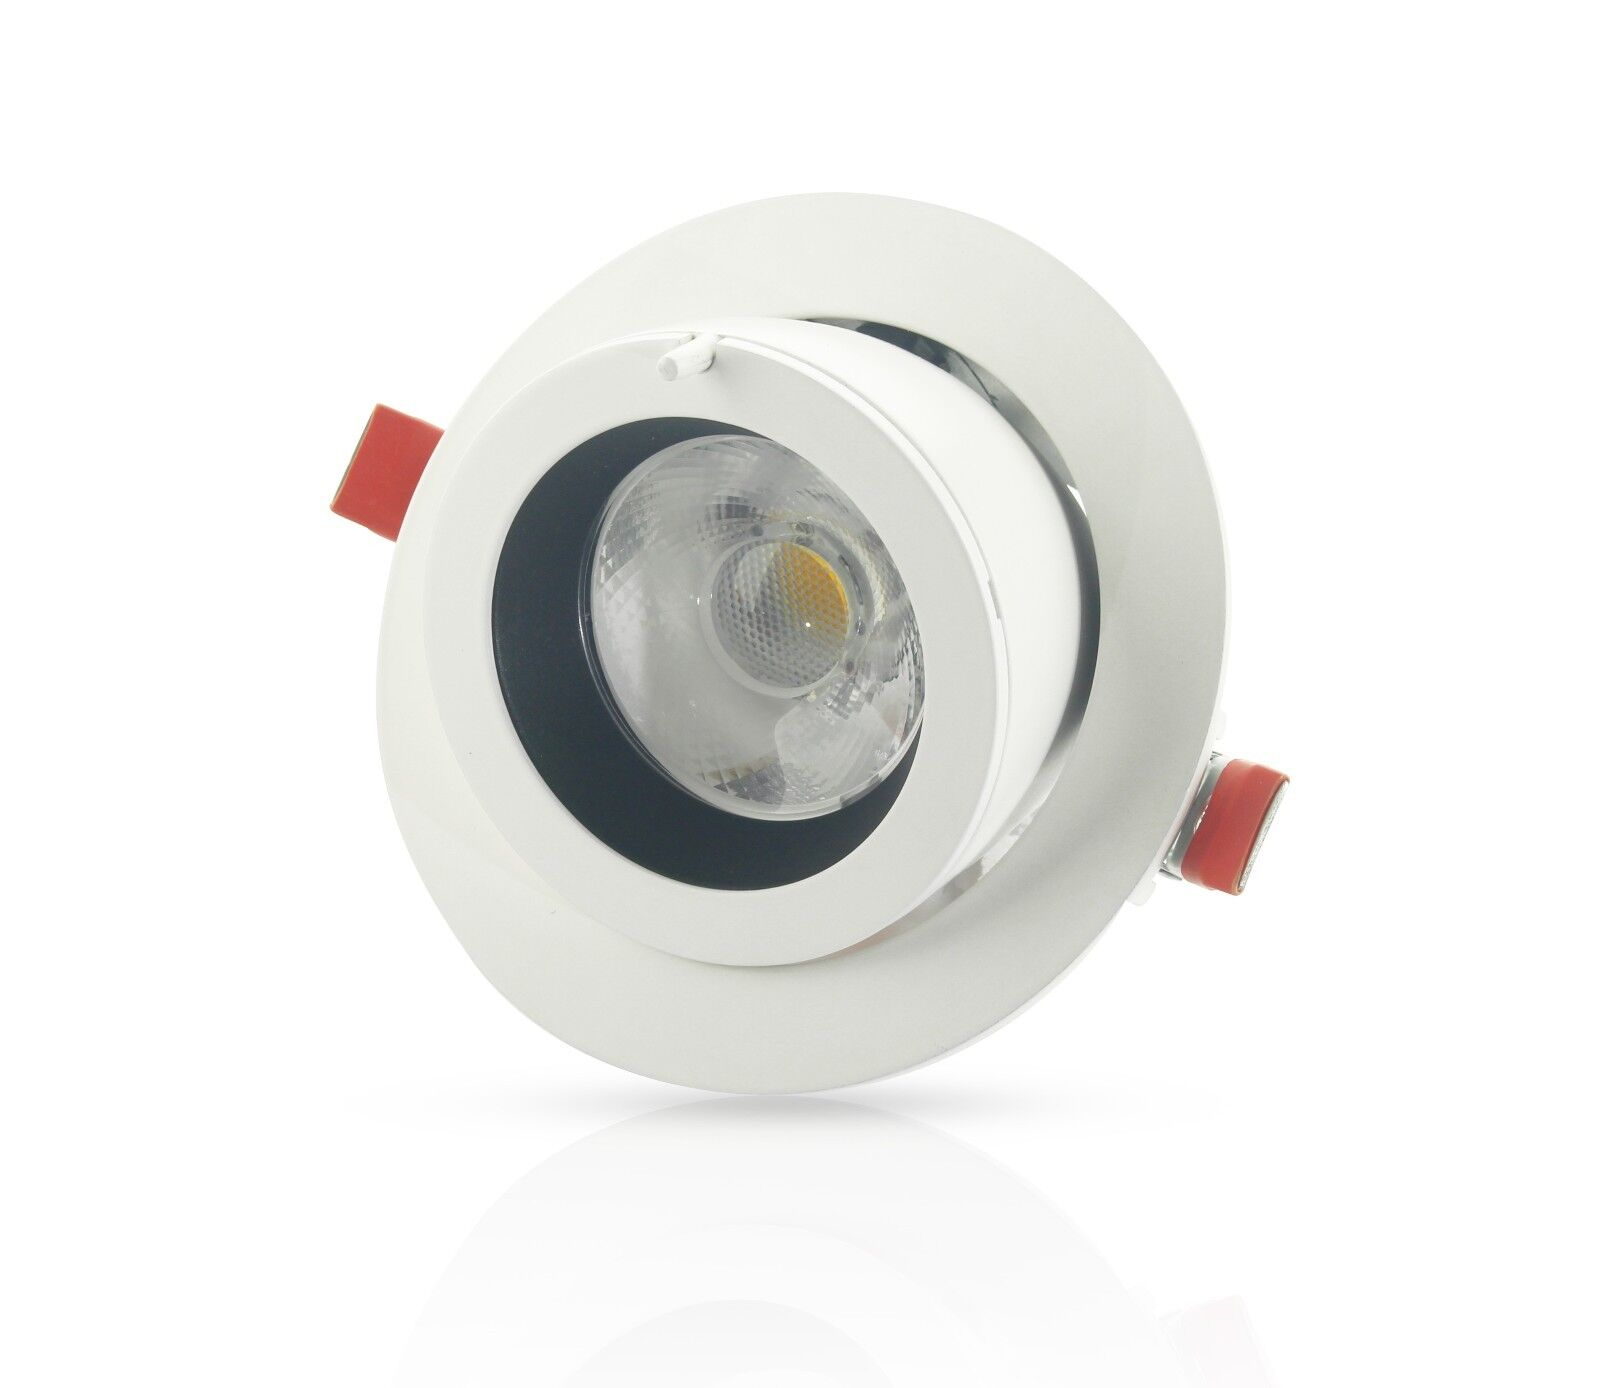 2 Watt 12 Volt Led Round Cabinet Light Fitting Kits Cool: 5-PACK OF LED KITCHEN CABINET STRIP LIGHT COOL WHITE OR